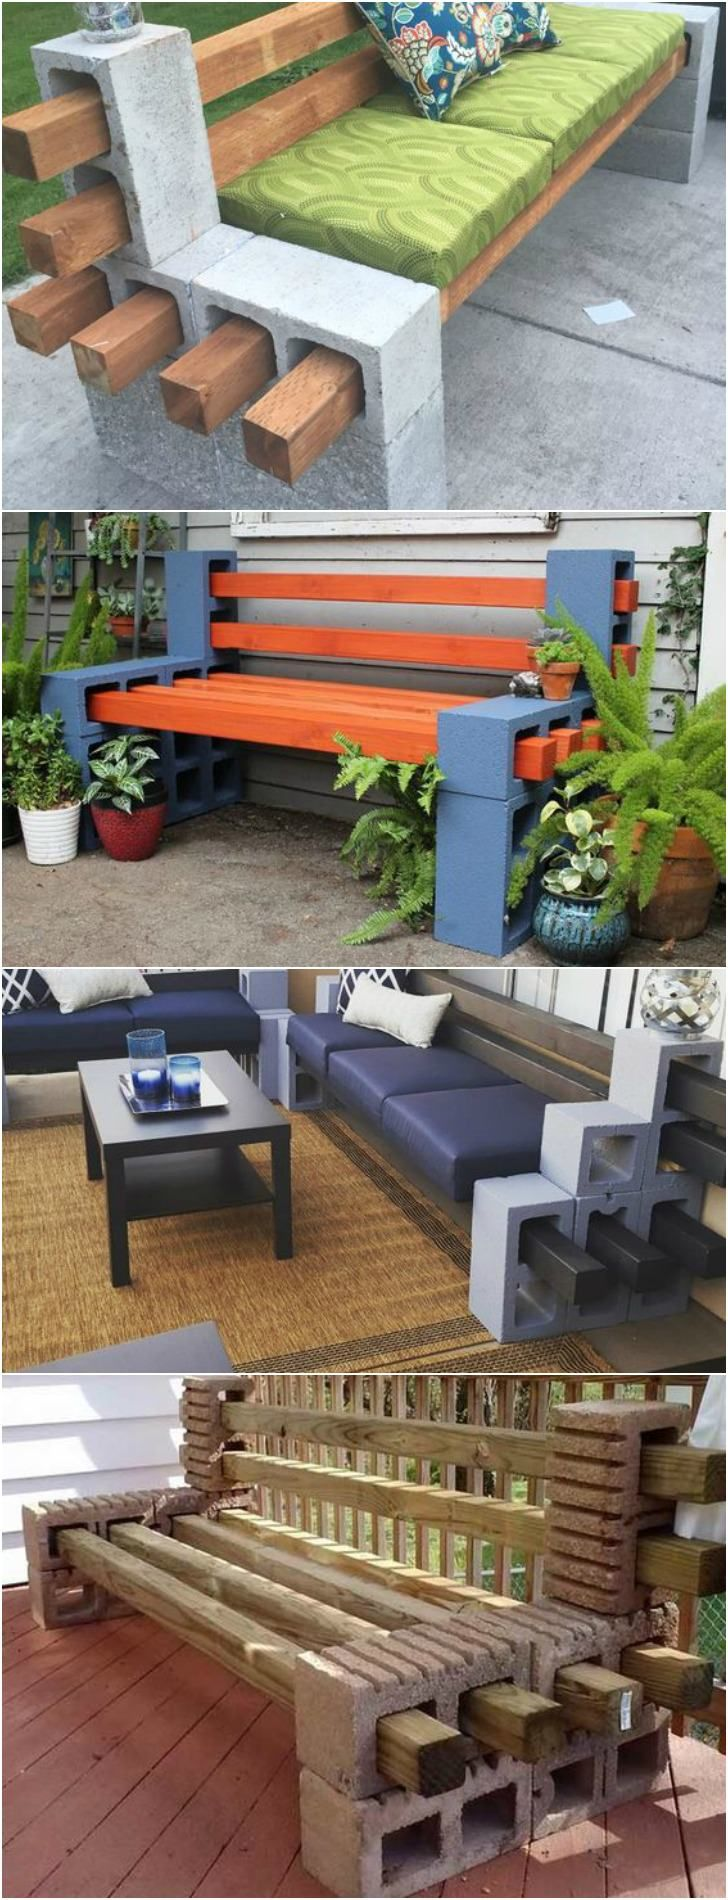 Backyard Furniture Ideas backyard furniture ideas carlo colombo design How To Make A Bench From Cinder Blocks 10 Amazing Ideas To Inspire You